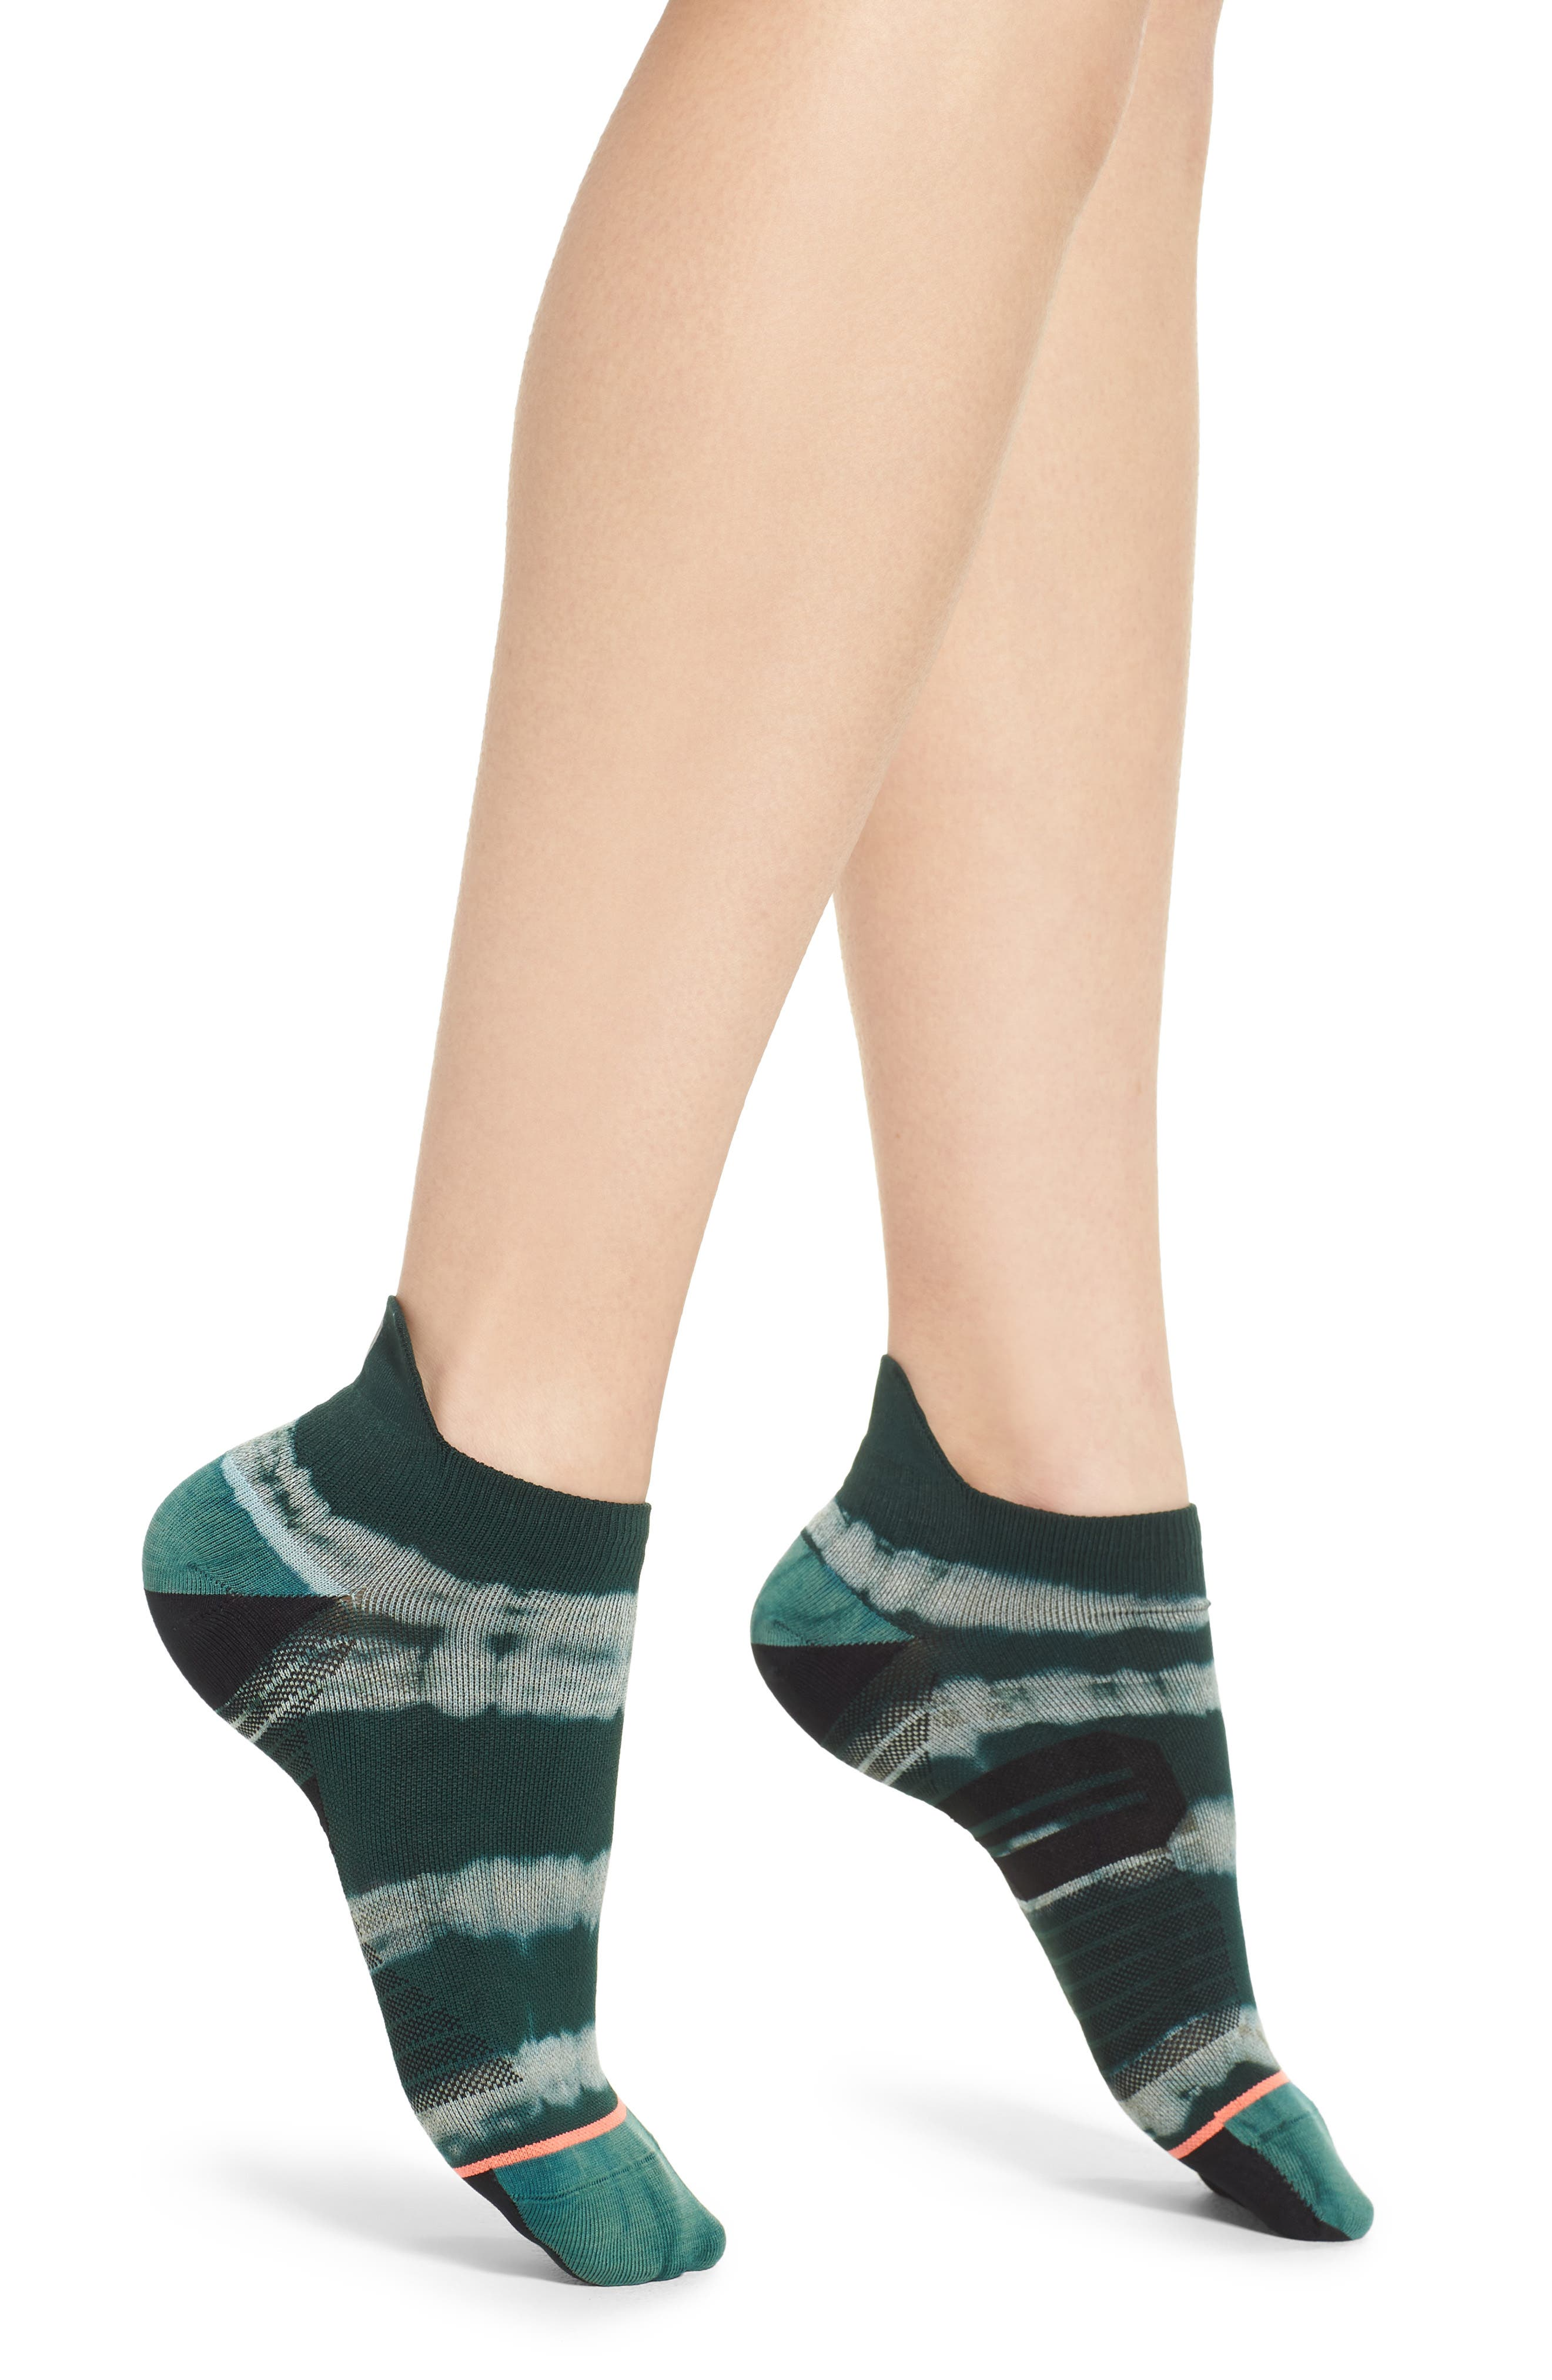 Downhill Tab Running Socks,                             Main thumbnail 1, color,                             TEAL